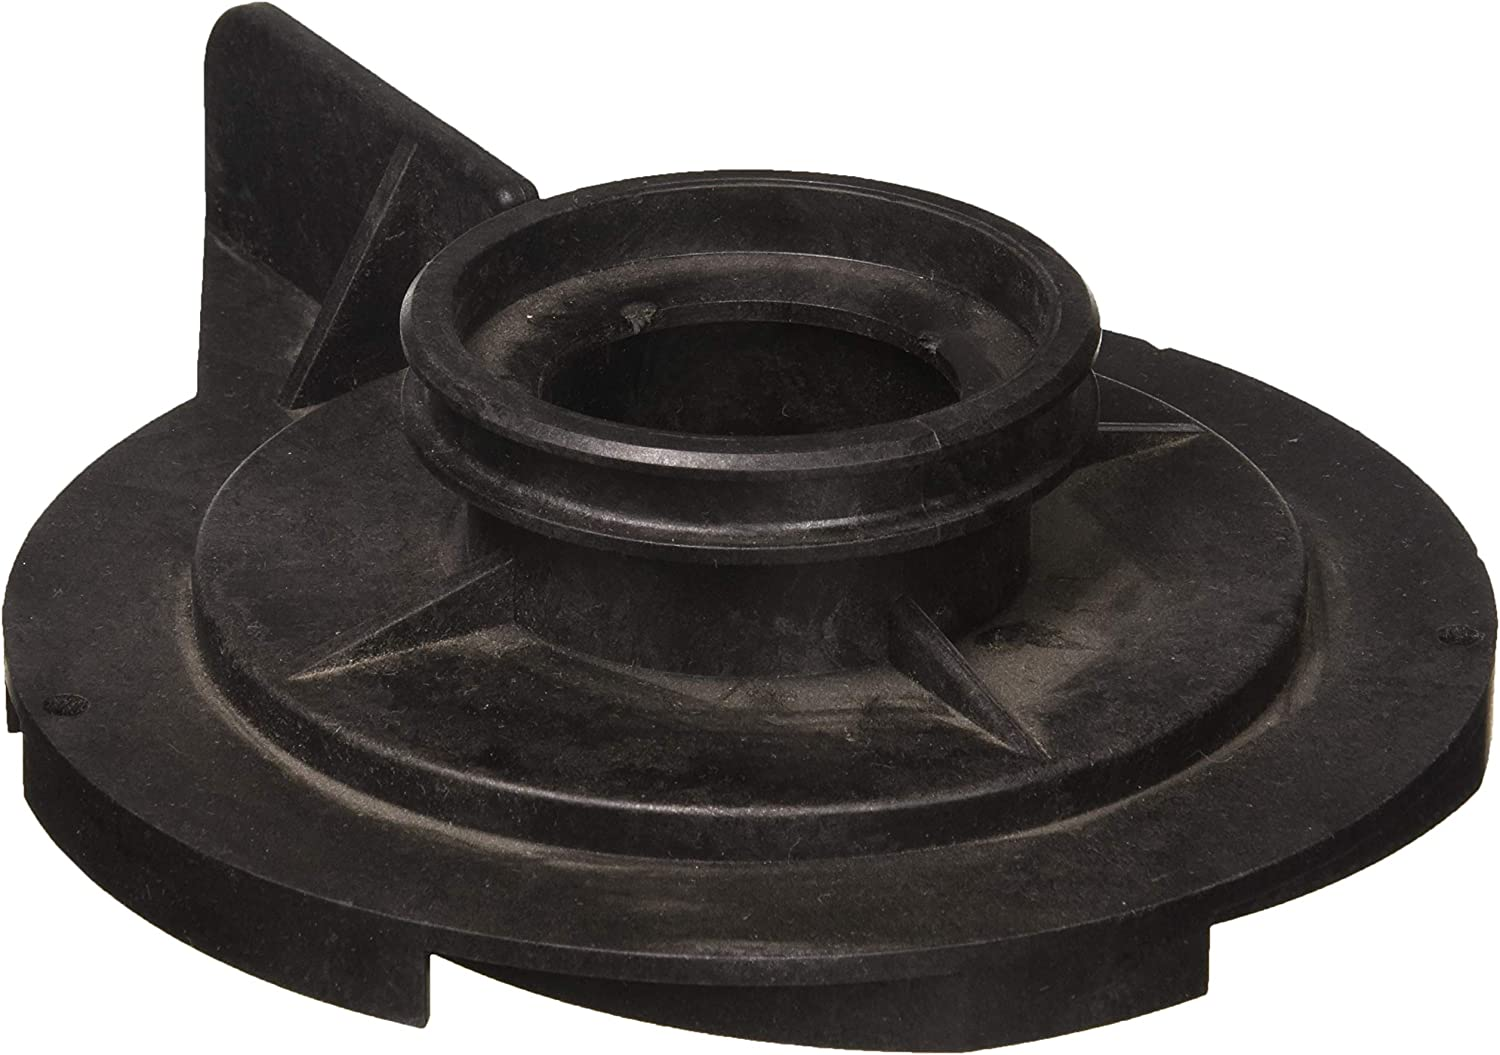 Pentair 355029 Diffuser Replacement Challenger High Flow Pool and Spa Inground Pump